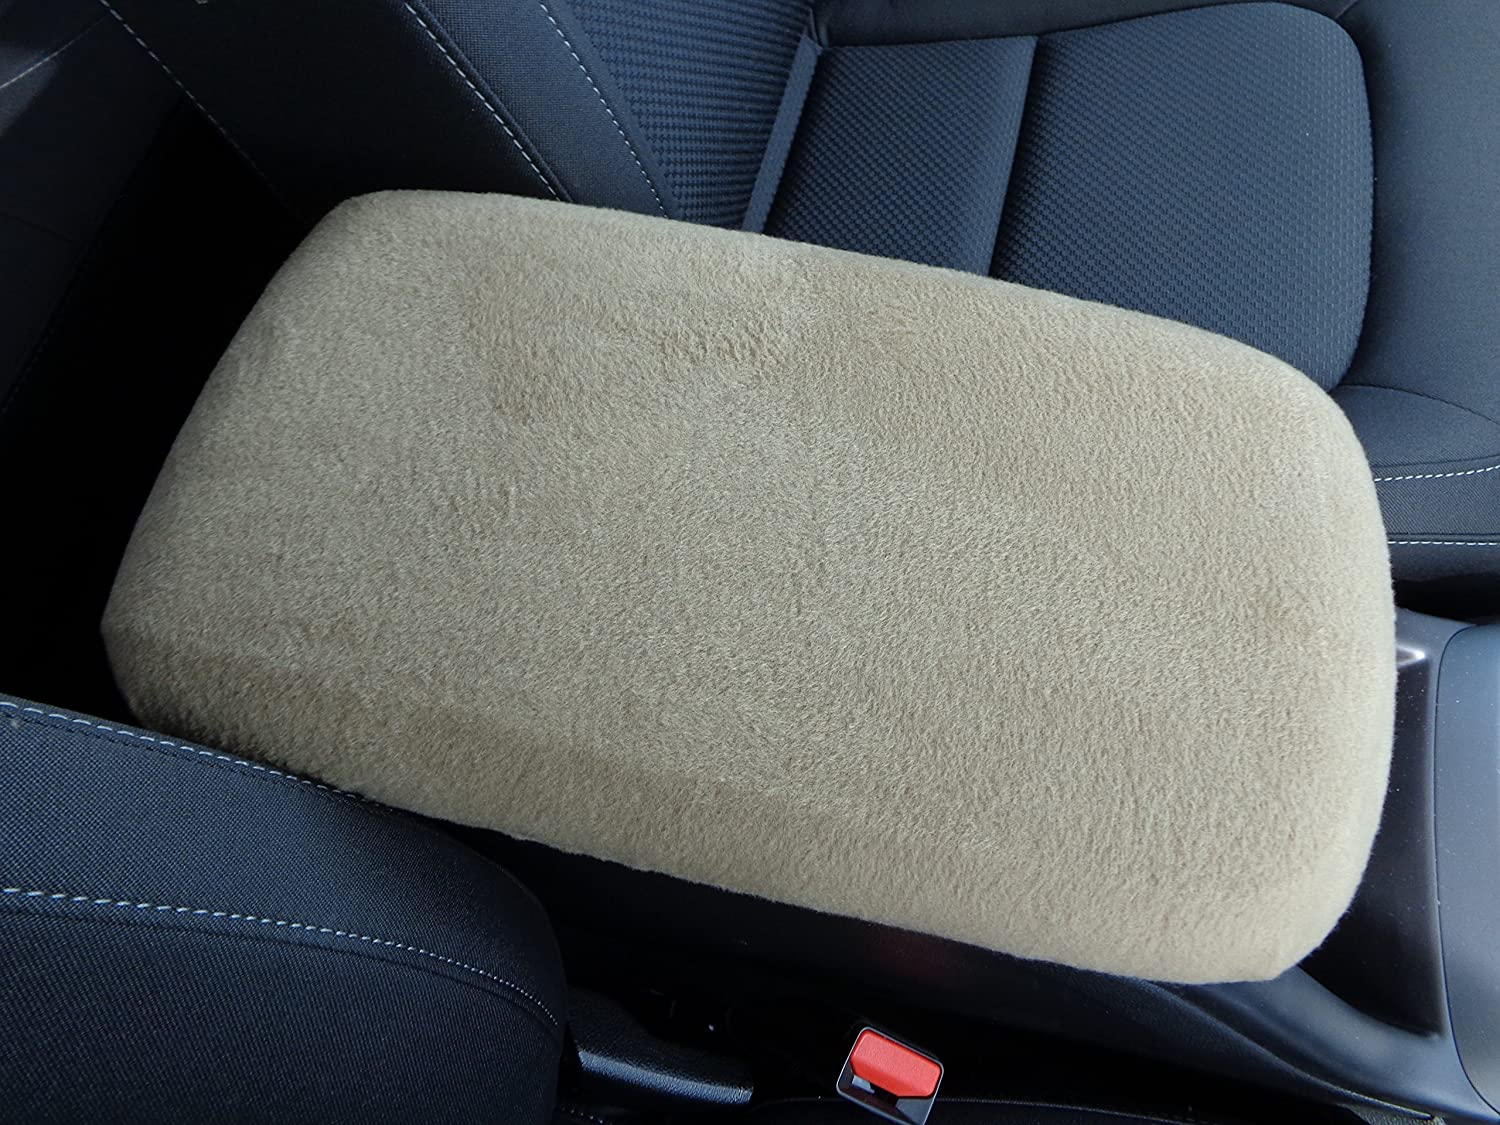 Car Console Covers Plus Fits Lexus RX350 Luxury Vehicle 2015 Fleece Center Armrest Cover for Center Console Lid Made in USA Taupe